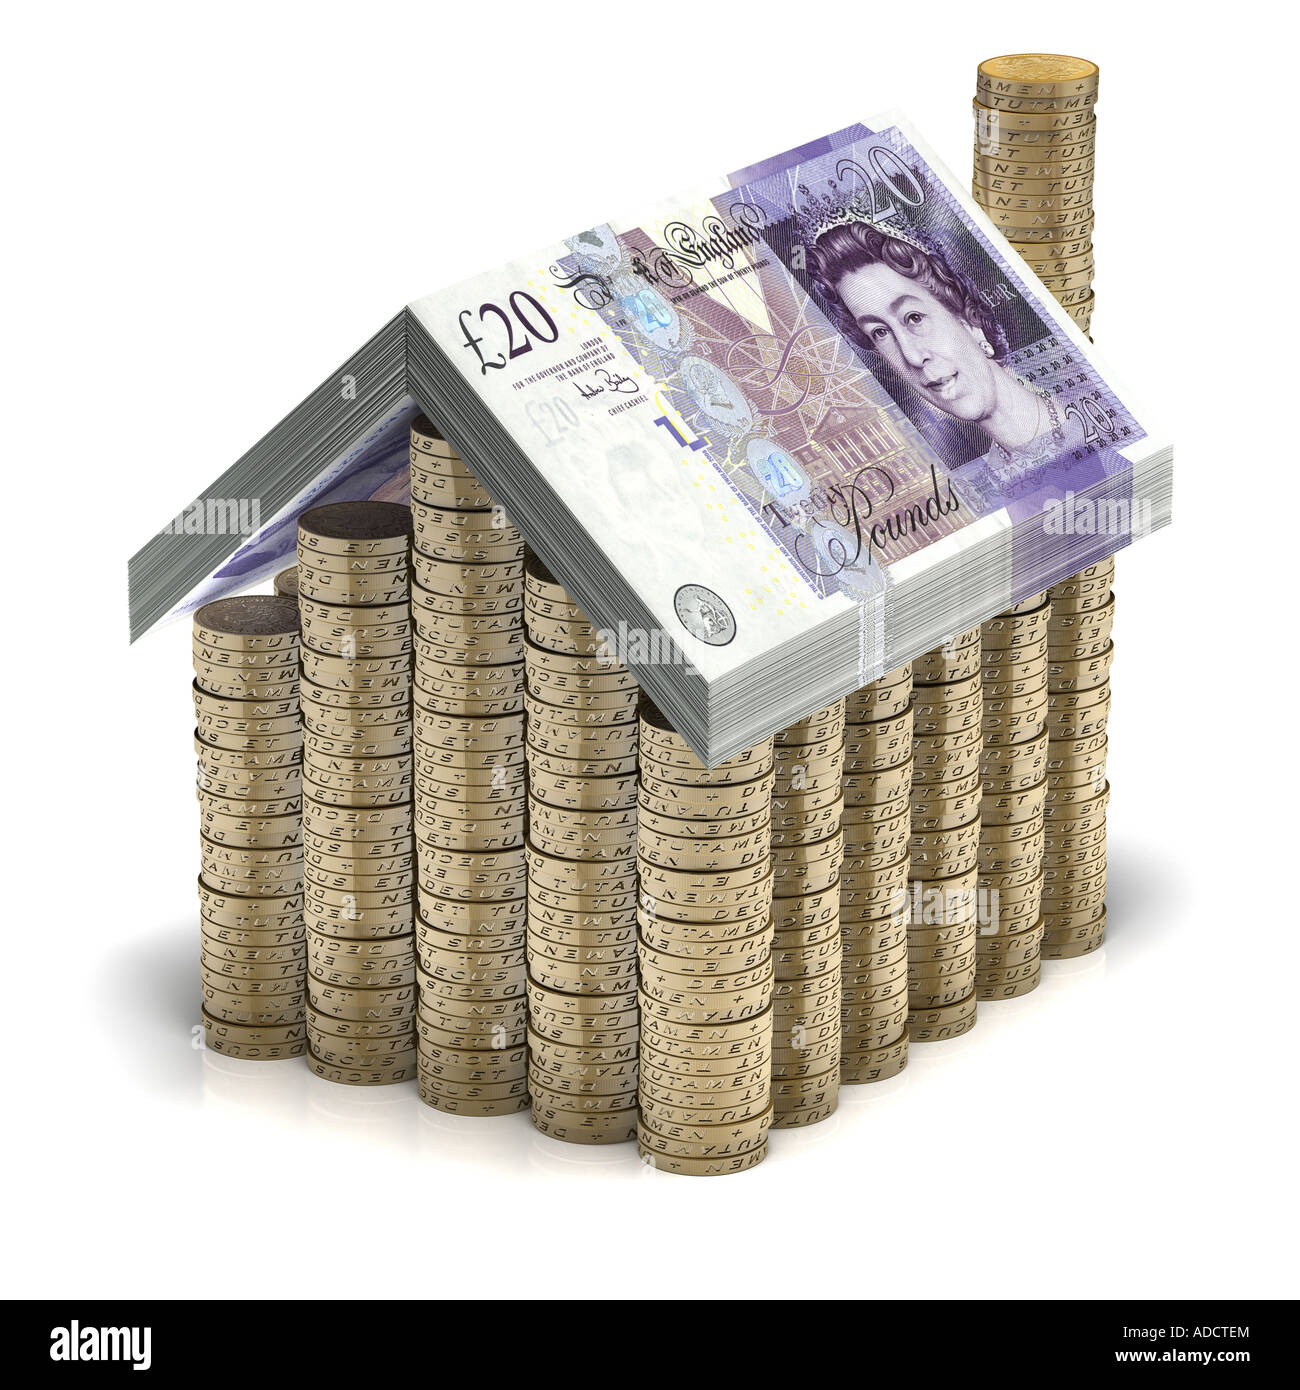 Safe as Houses. A house made of pound coins & banknotes. Mortgages, Finance - Stock Image